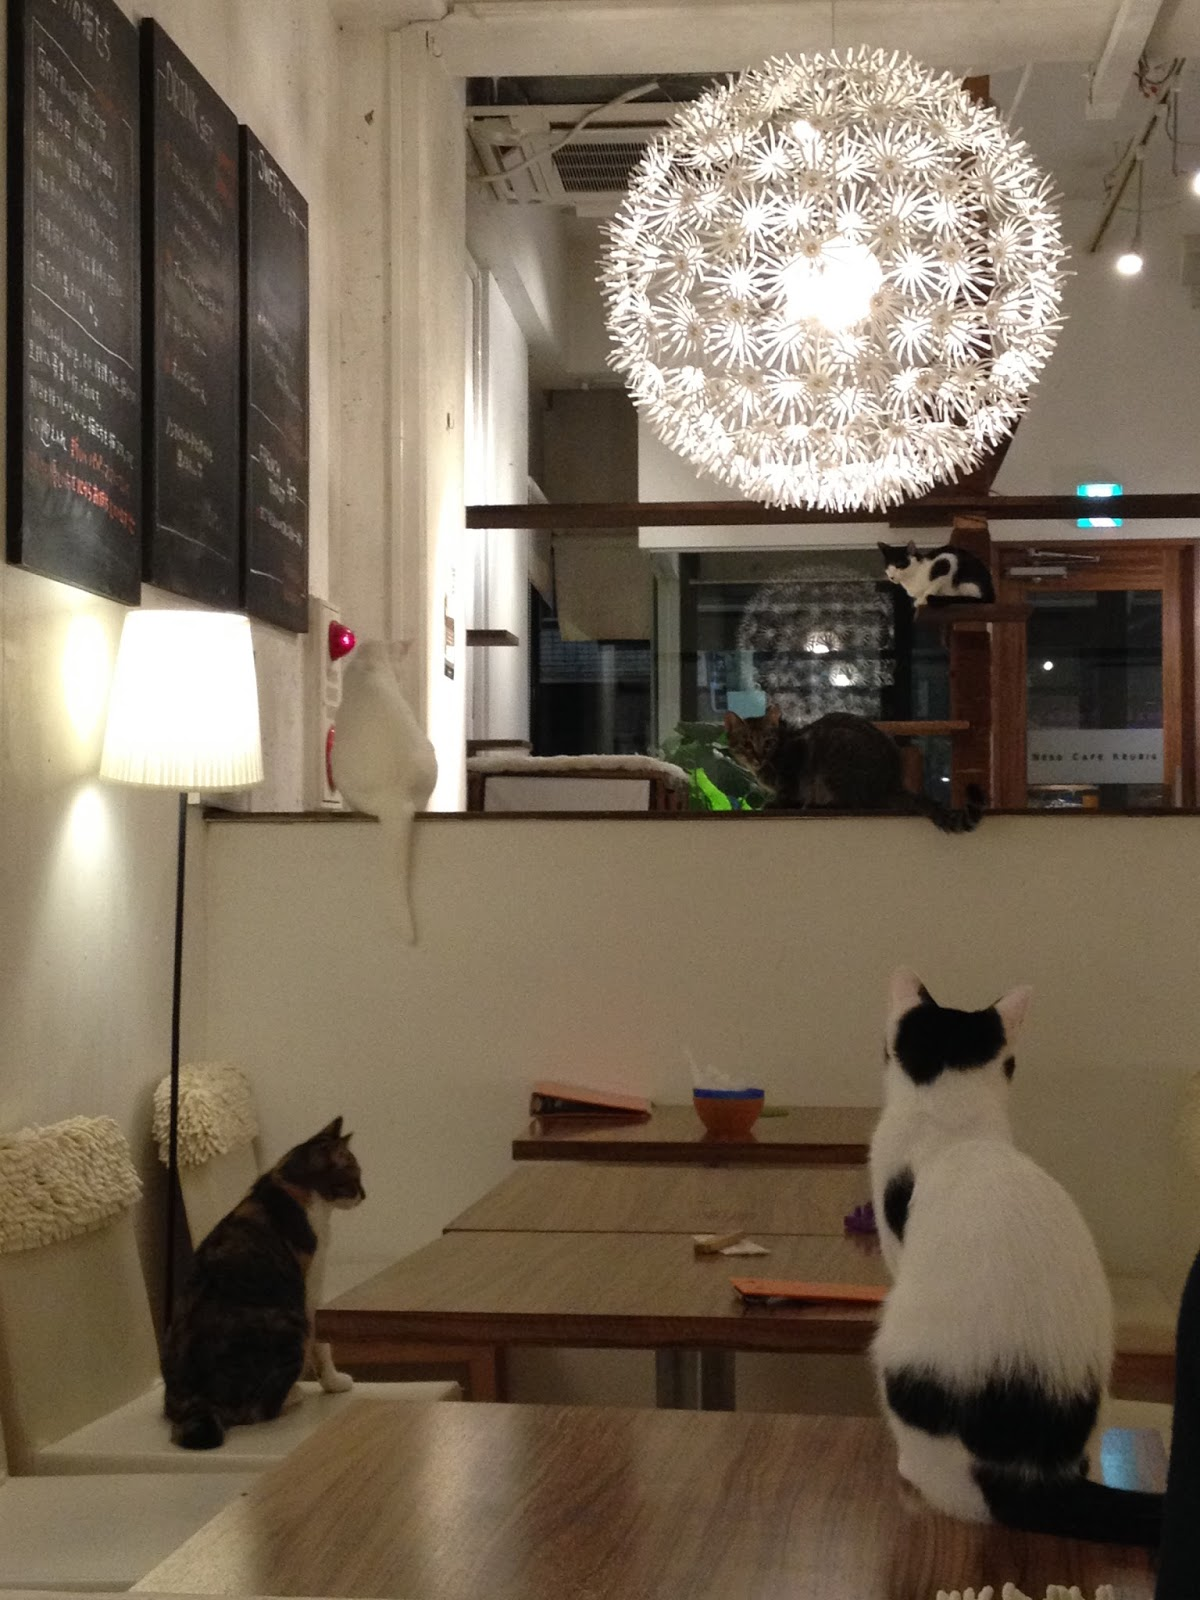 Cat Cafes Seem To Be All The Rage Recently Arently First One Started In Taiwan Back 1998 But Really Caught On An And As A Result Many